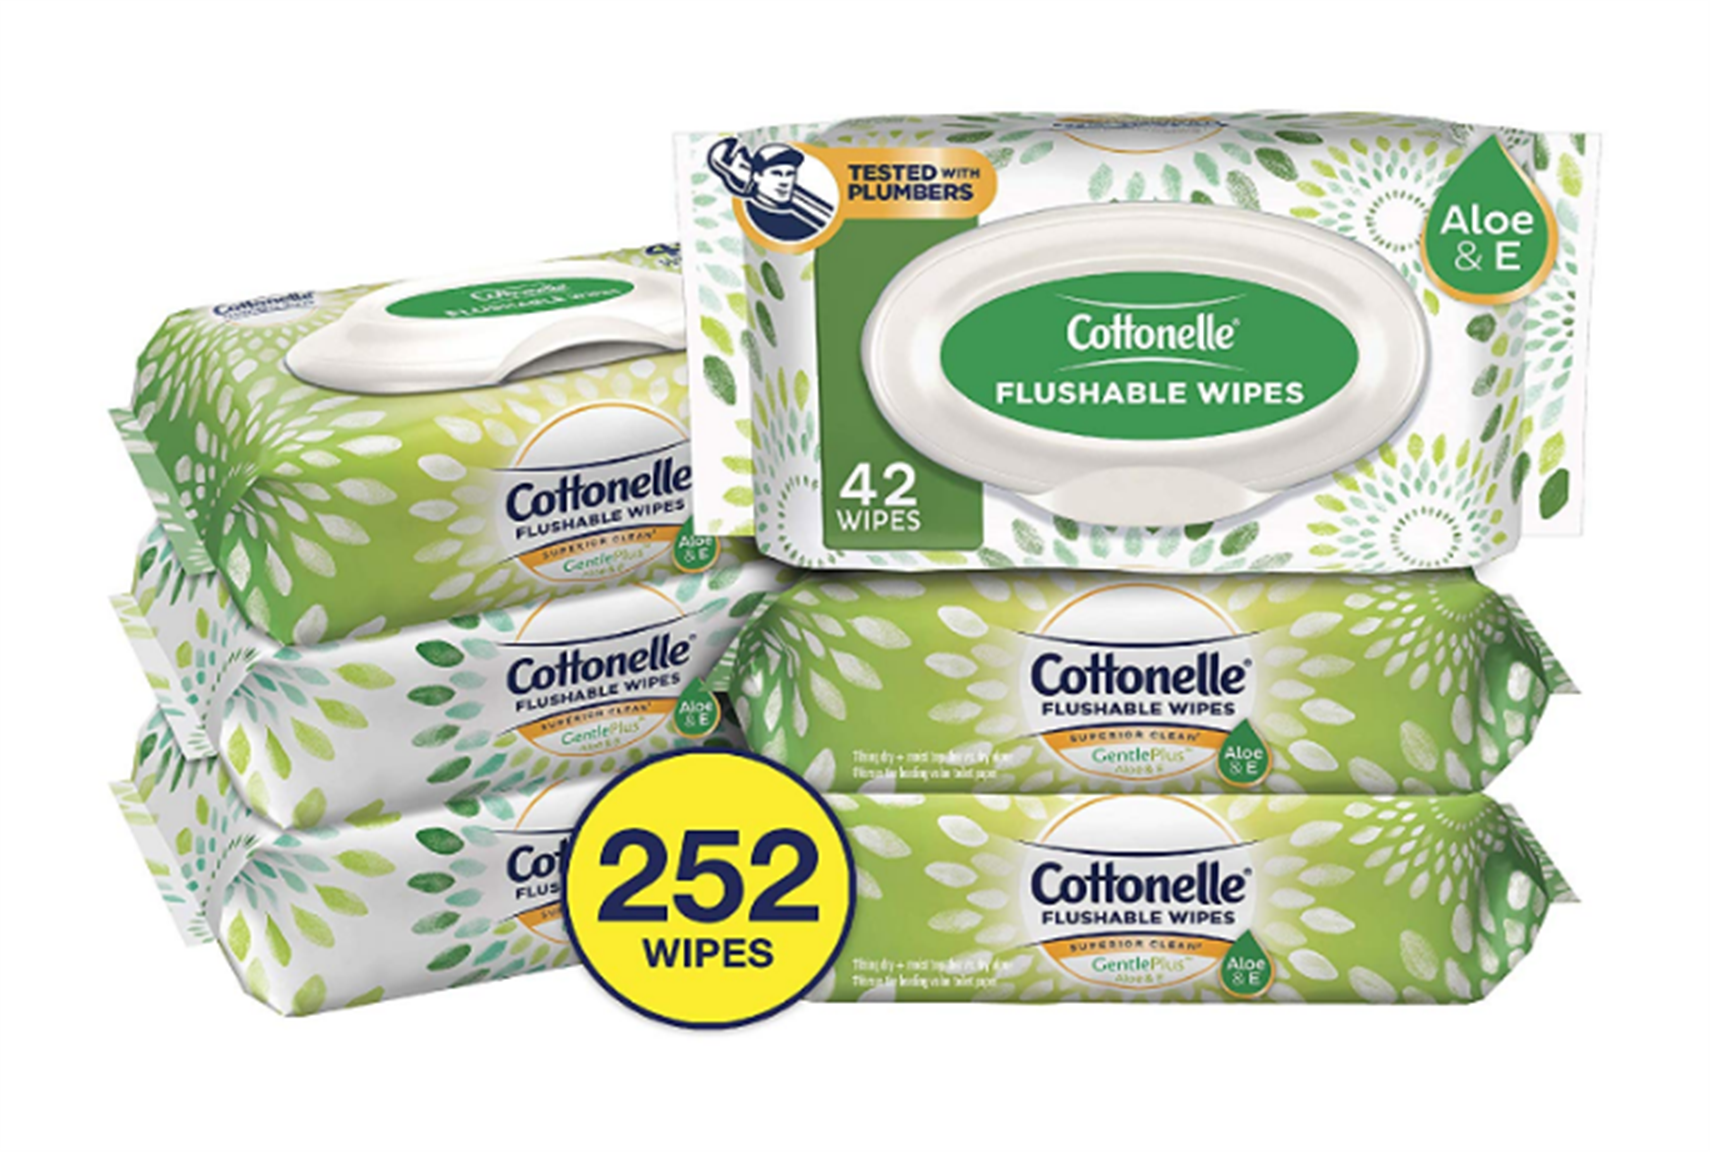 Amazon – 6 Pack 42-Count Cottonelle GentlePlus Flushable Wipes w/ Aloe & Vitamin E (252-Total Wipes) Only $6.85 Shipped!